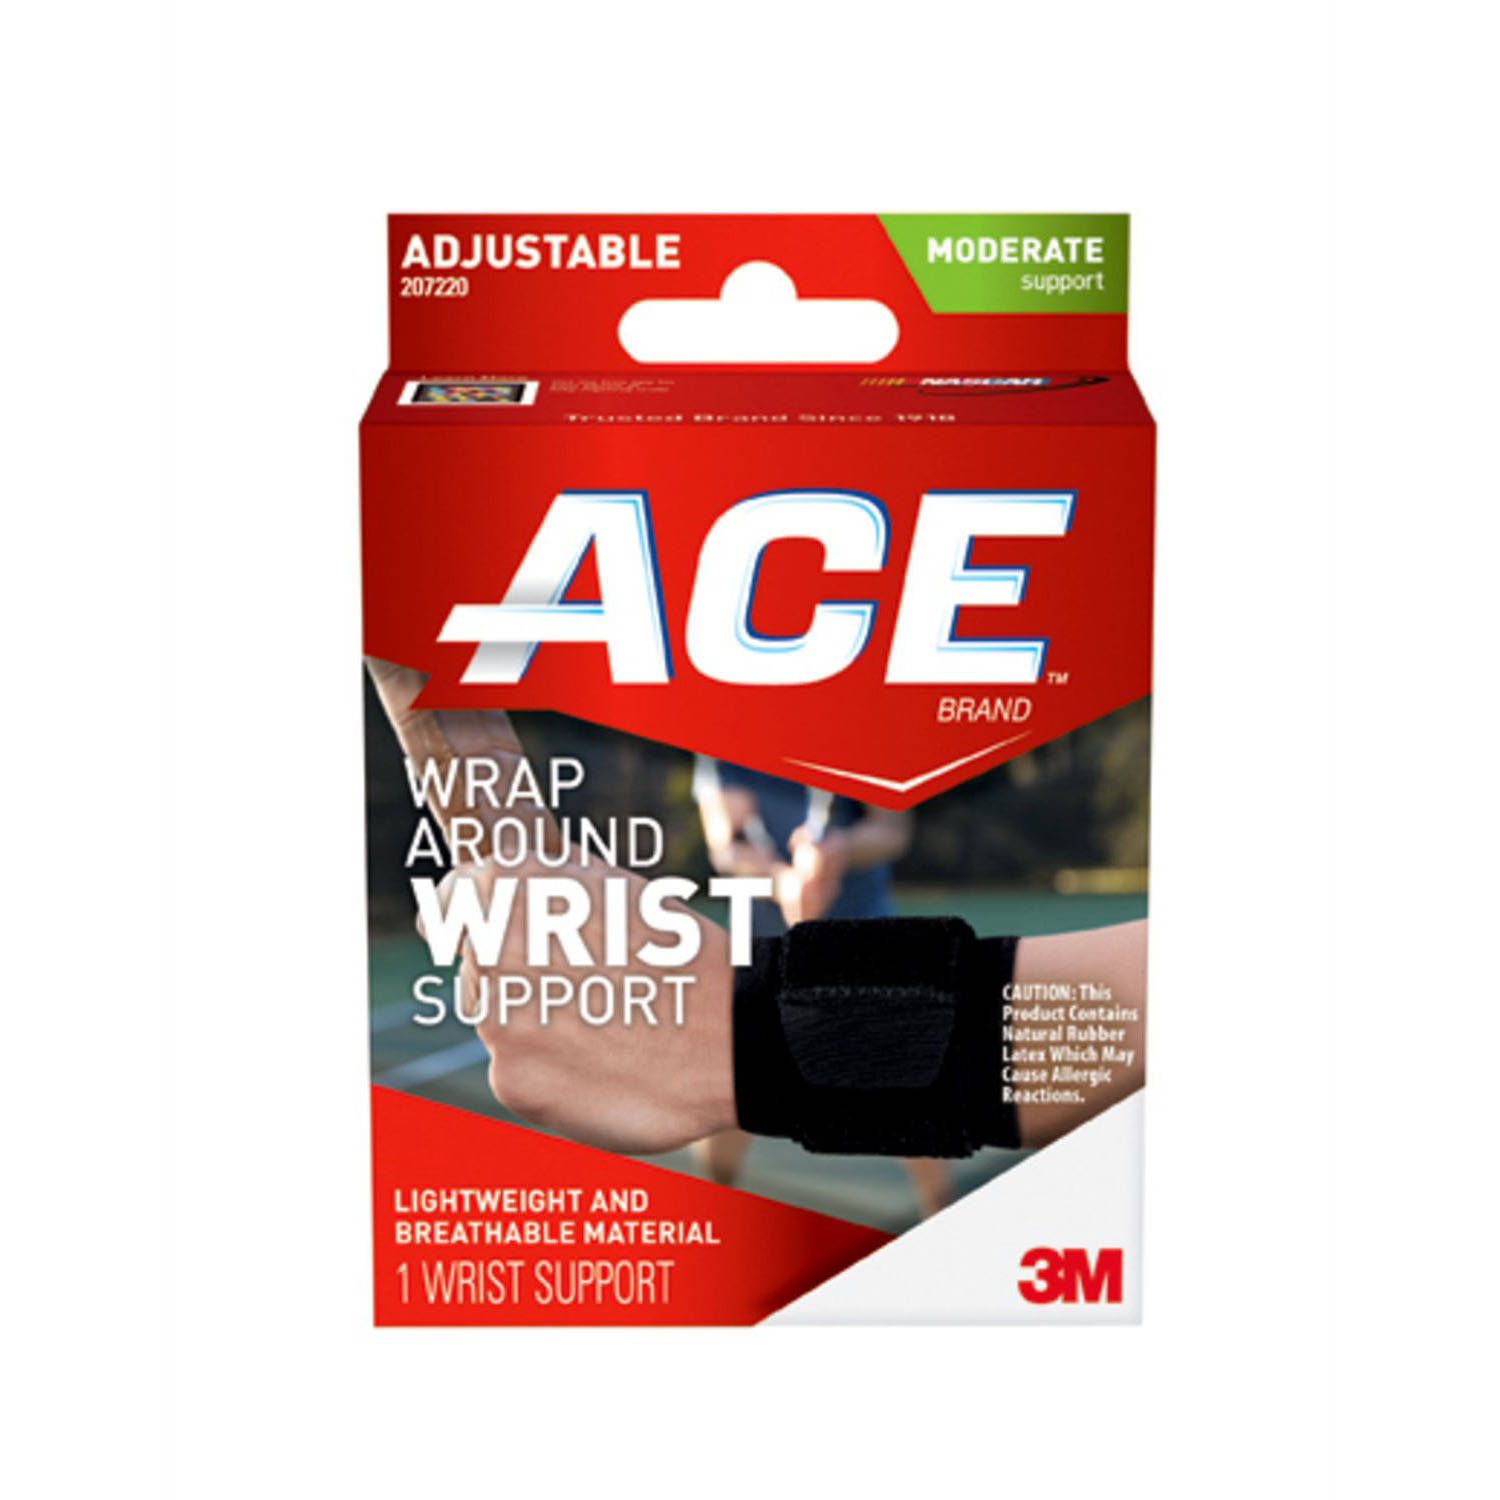 ACE Wrap-Around Wrist Support, One Size, Adjustable